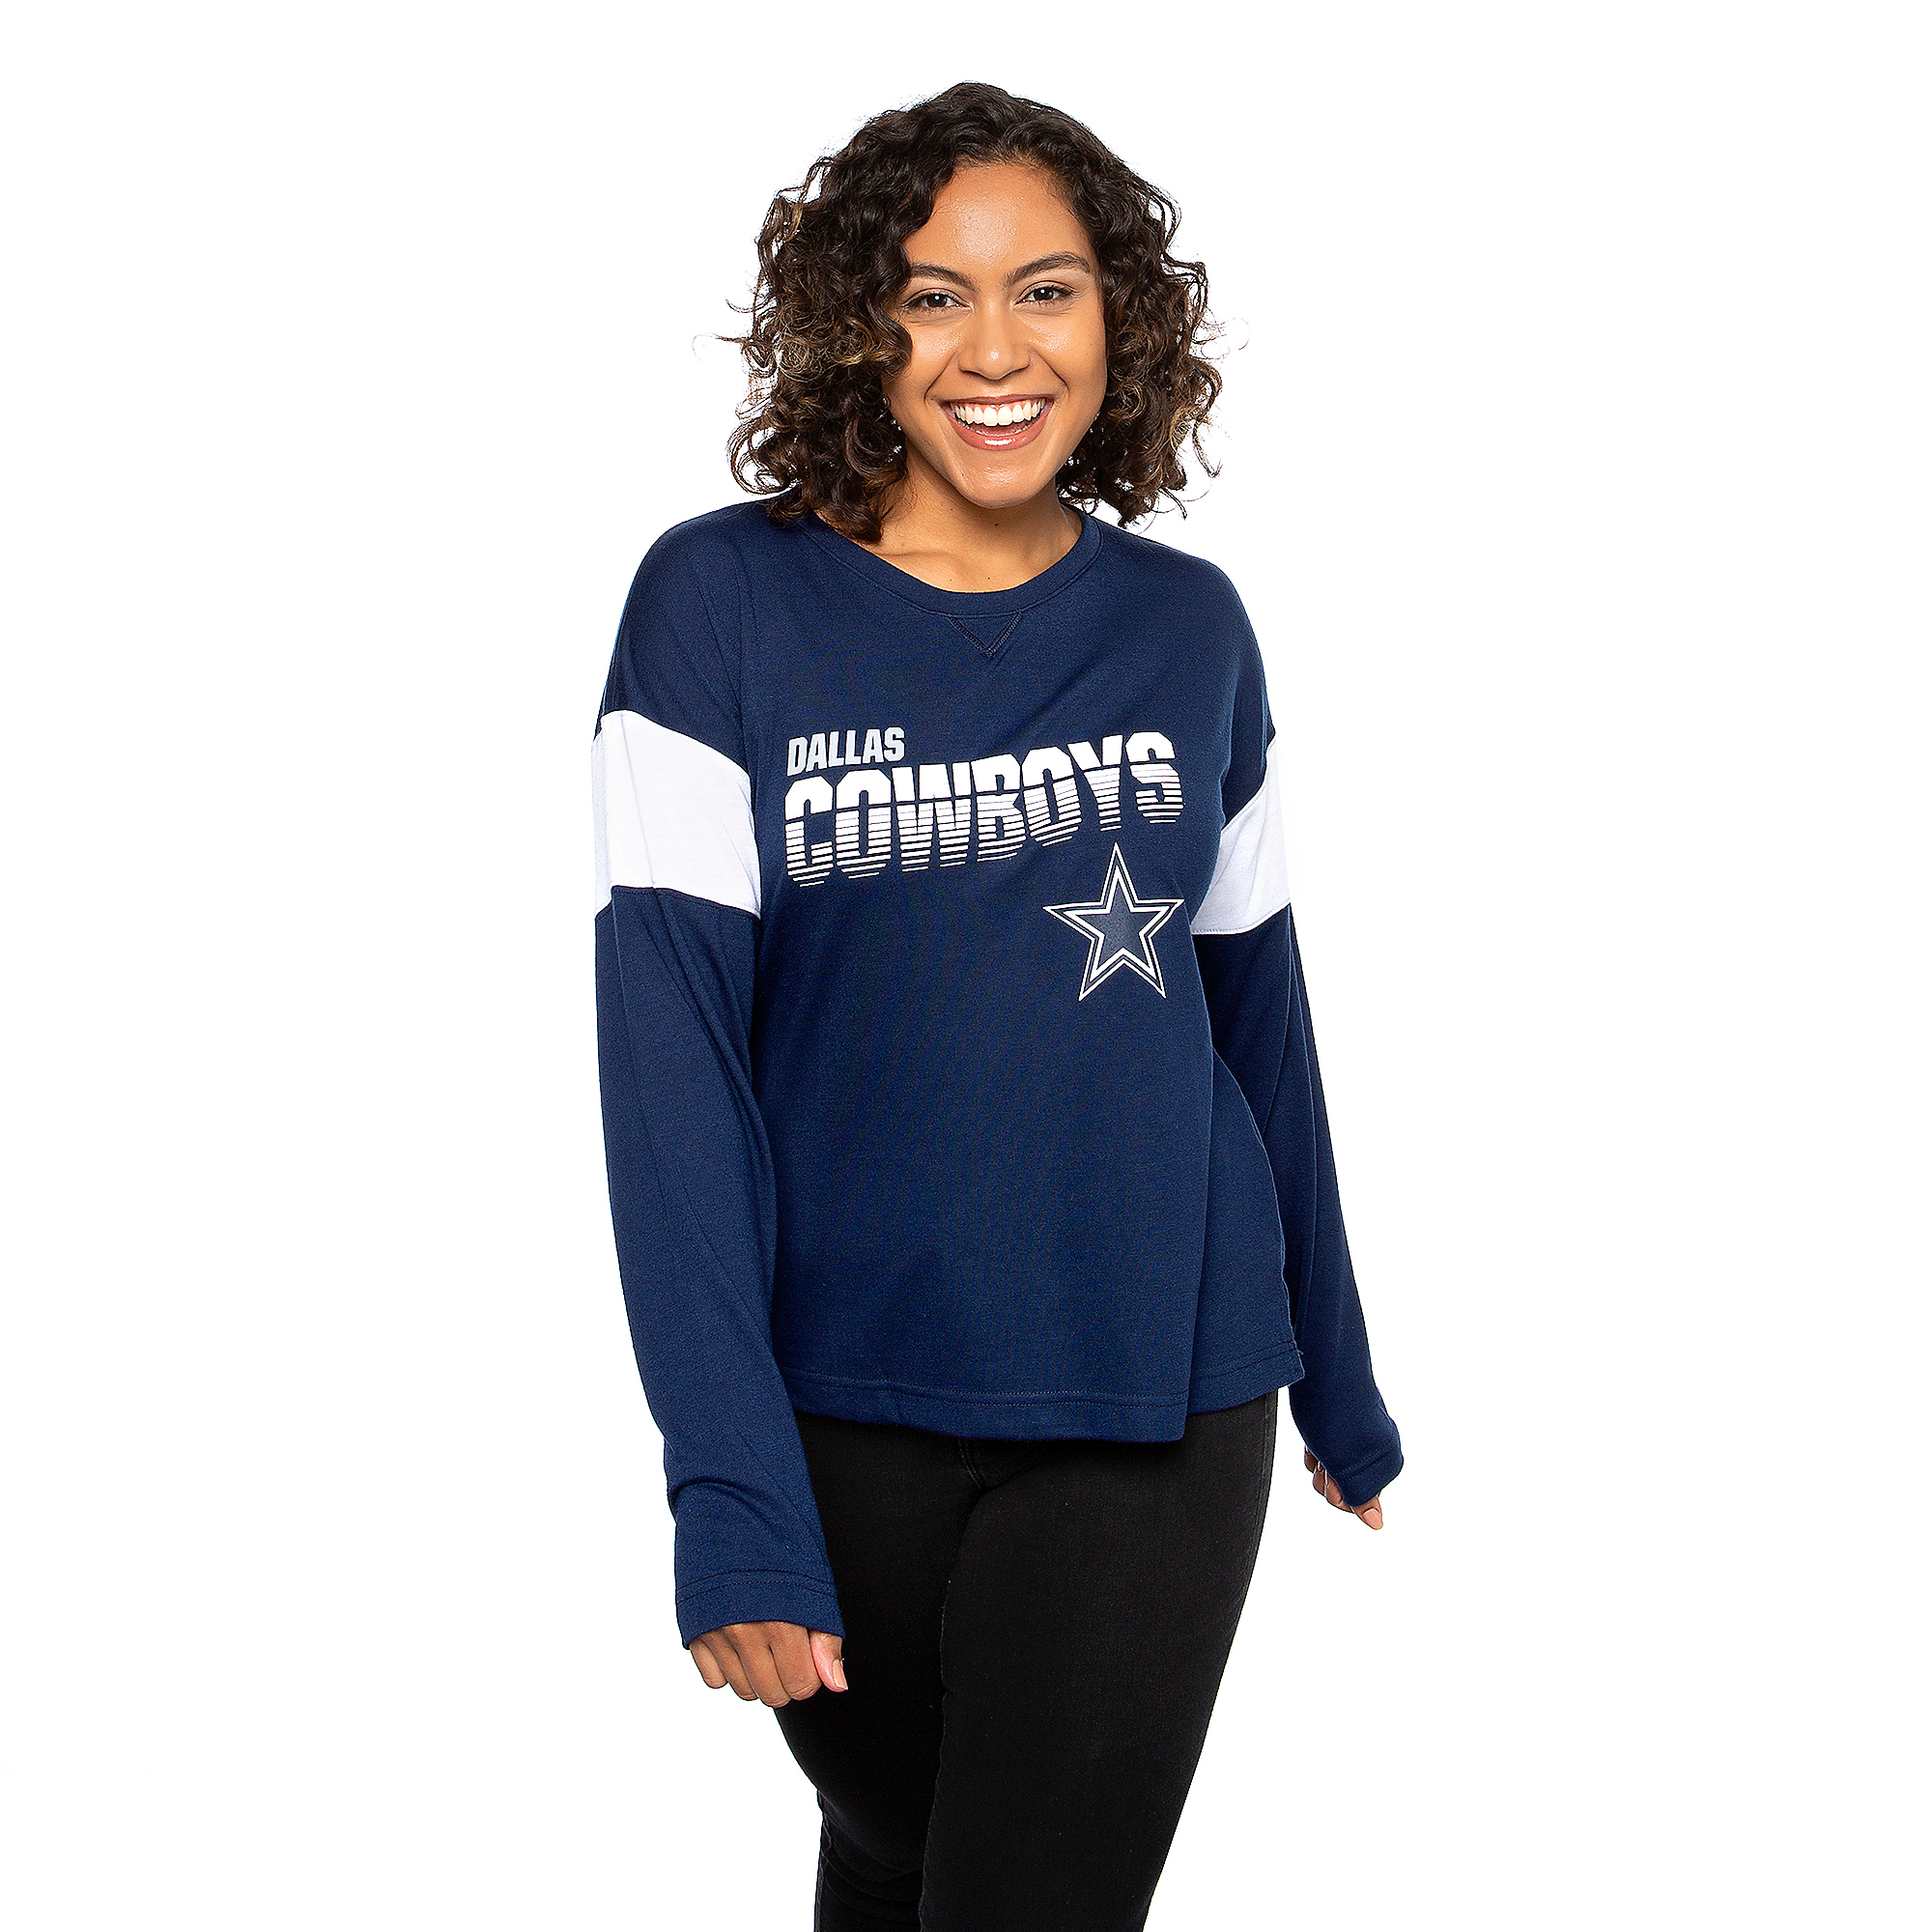 Dallas Cowboys Nike Womens Breathe Long Sleeve T-Shirt